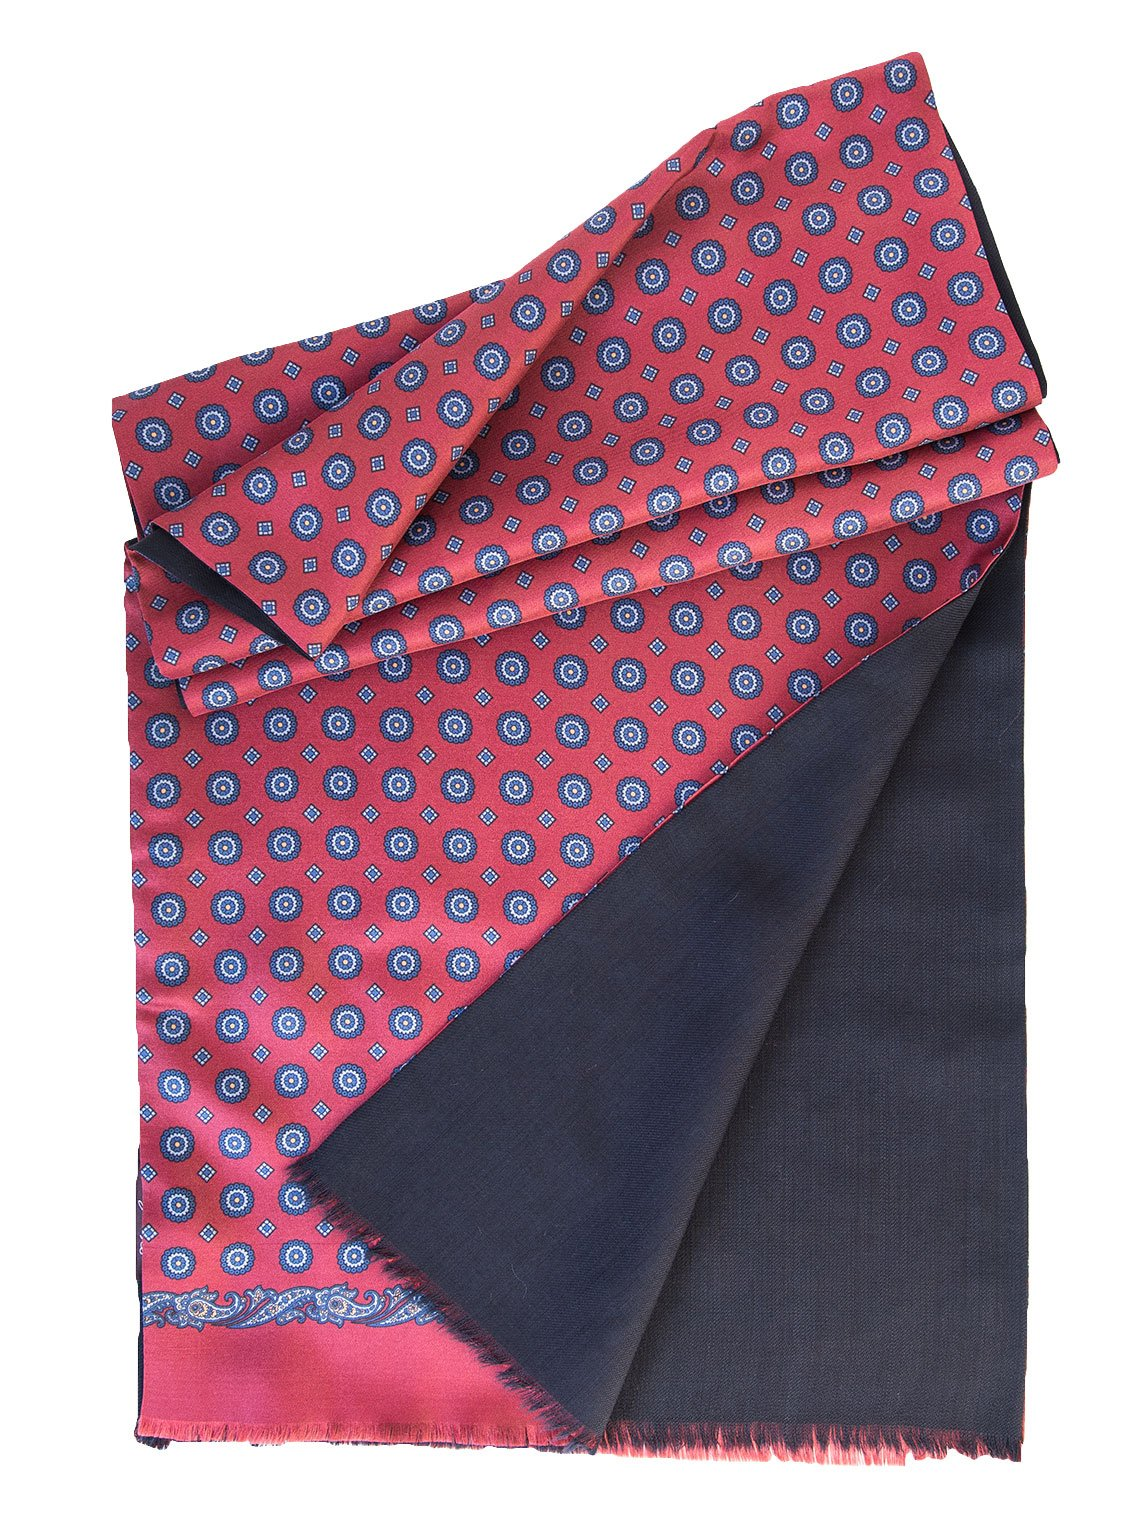 Elizabetta Men's Italian Silk Scarf-Soft Wool Lined-Burgundy & Navy